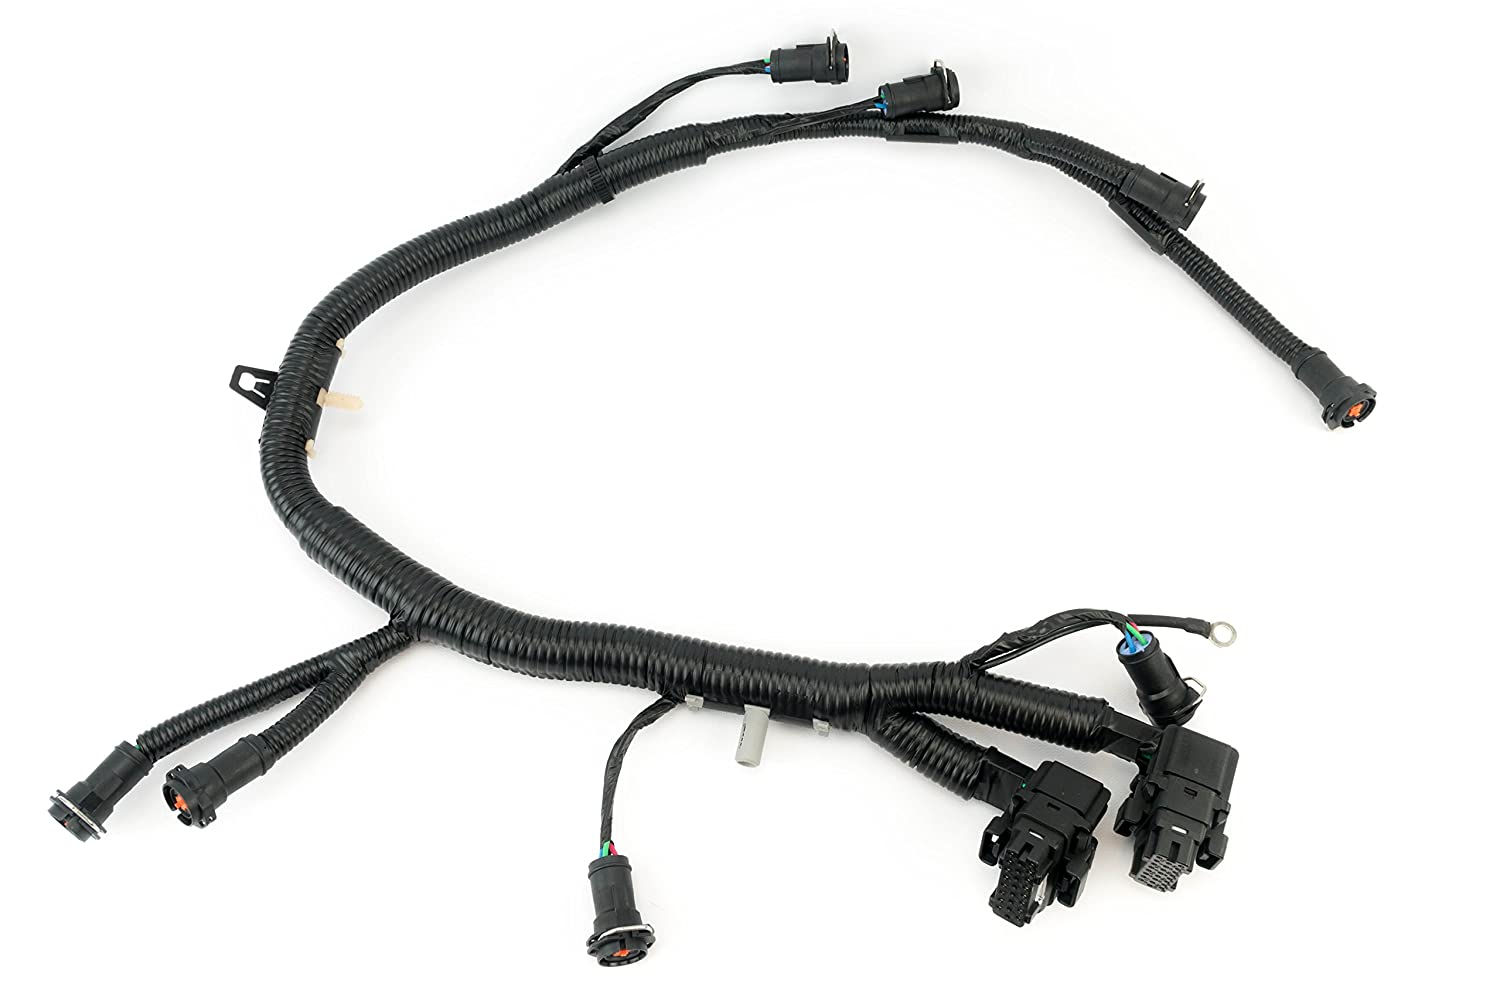 Amazon.com: FICM Engine Fuel Injector Complete Wire Harness ...